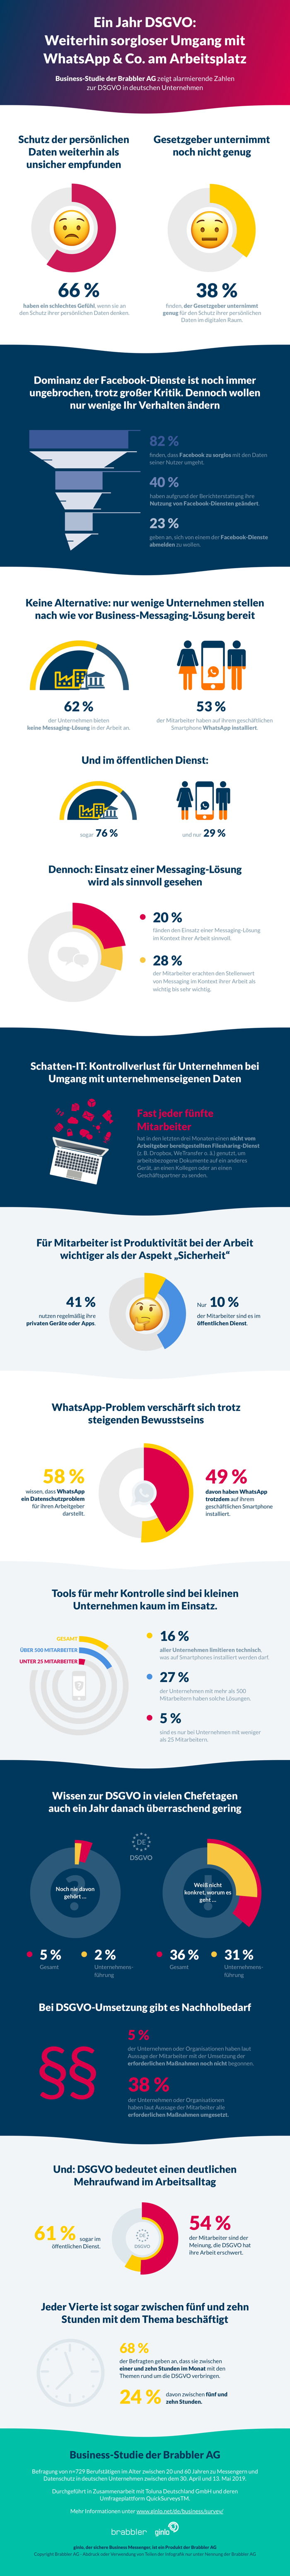 Brabbler AG: Business-Studie